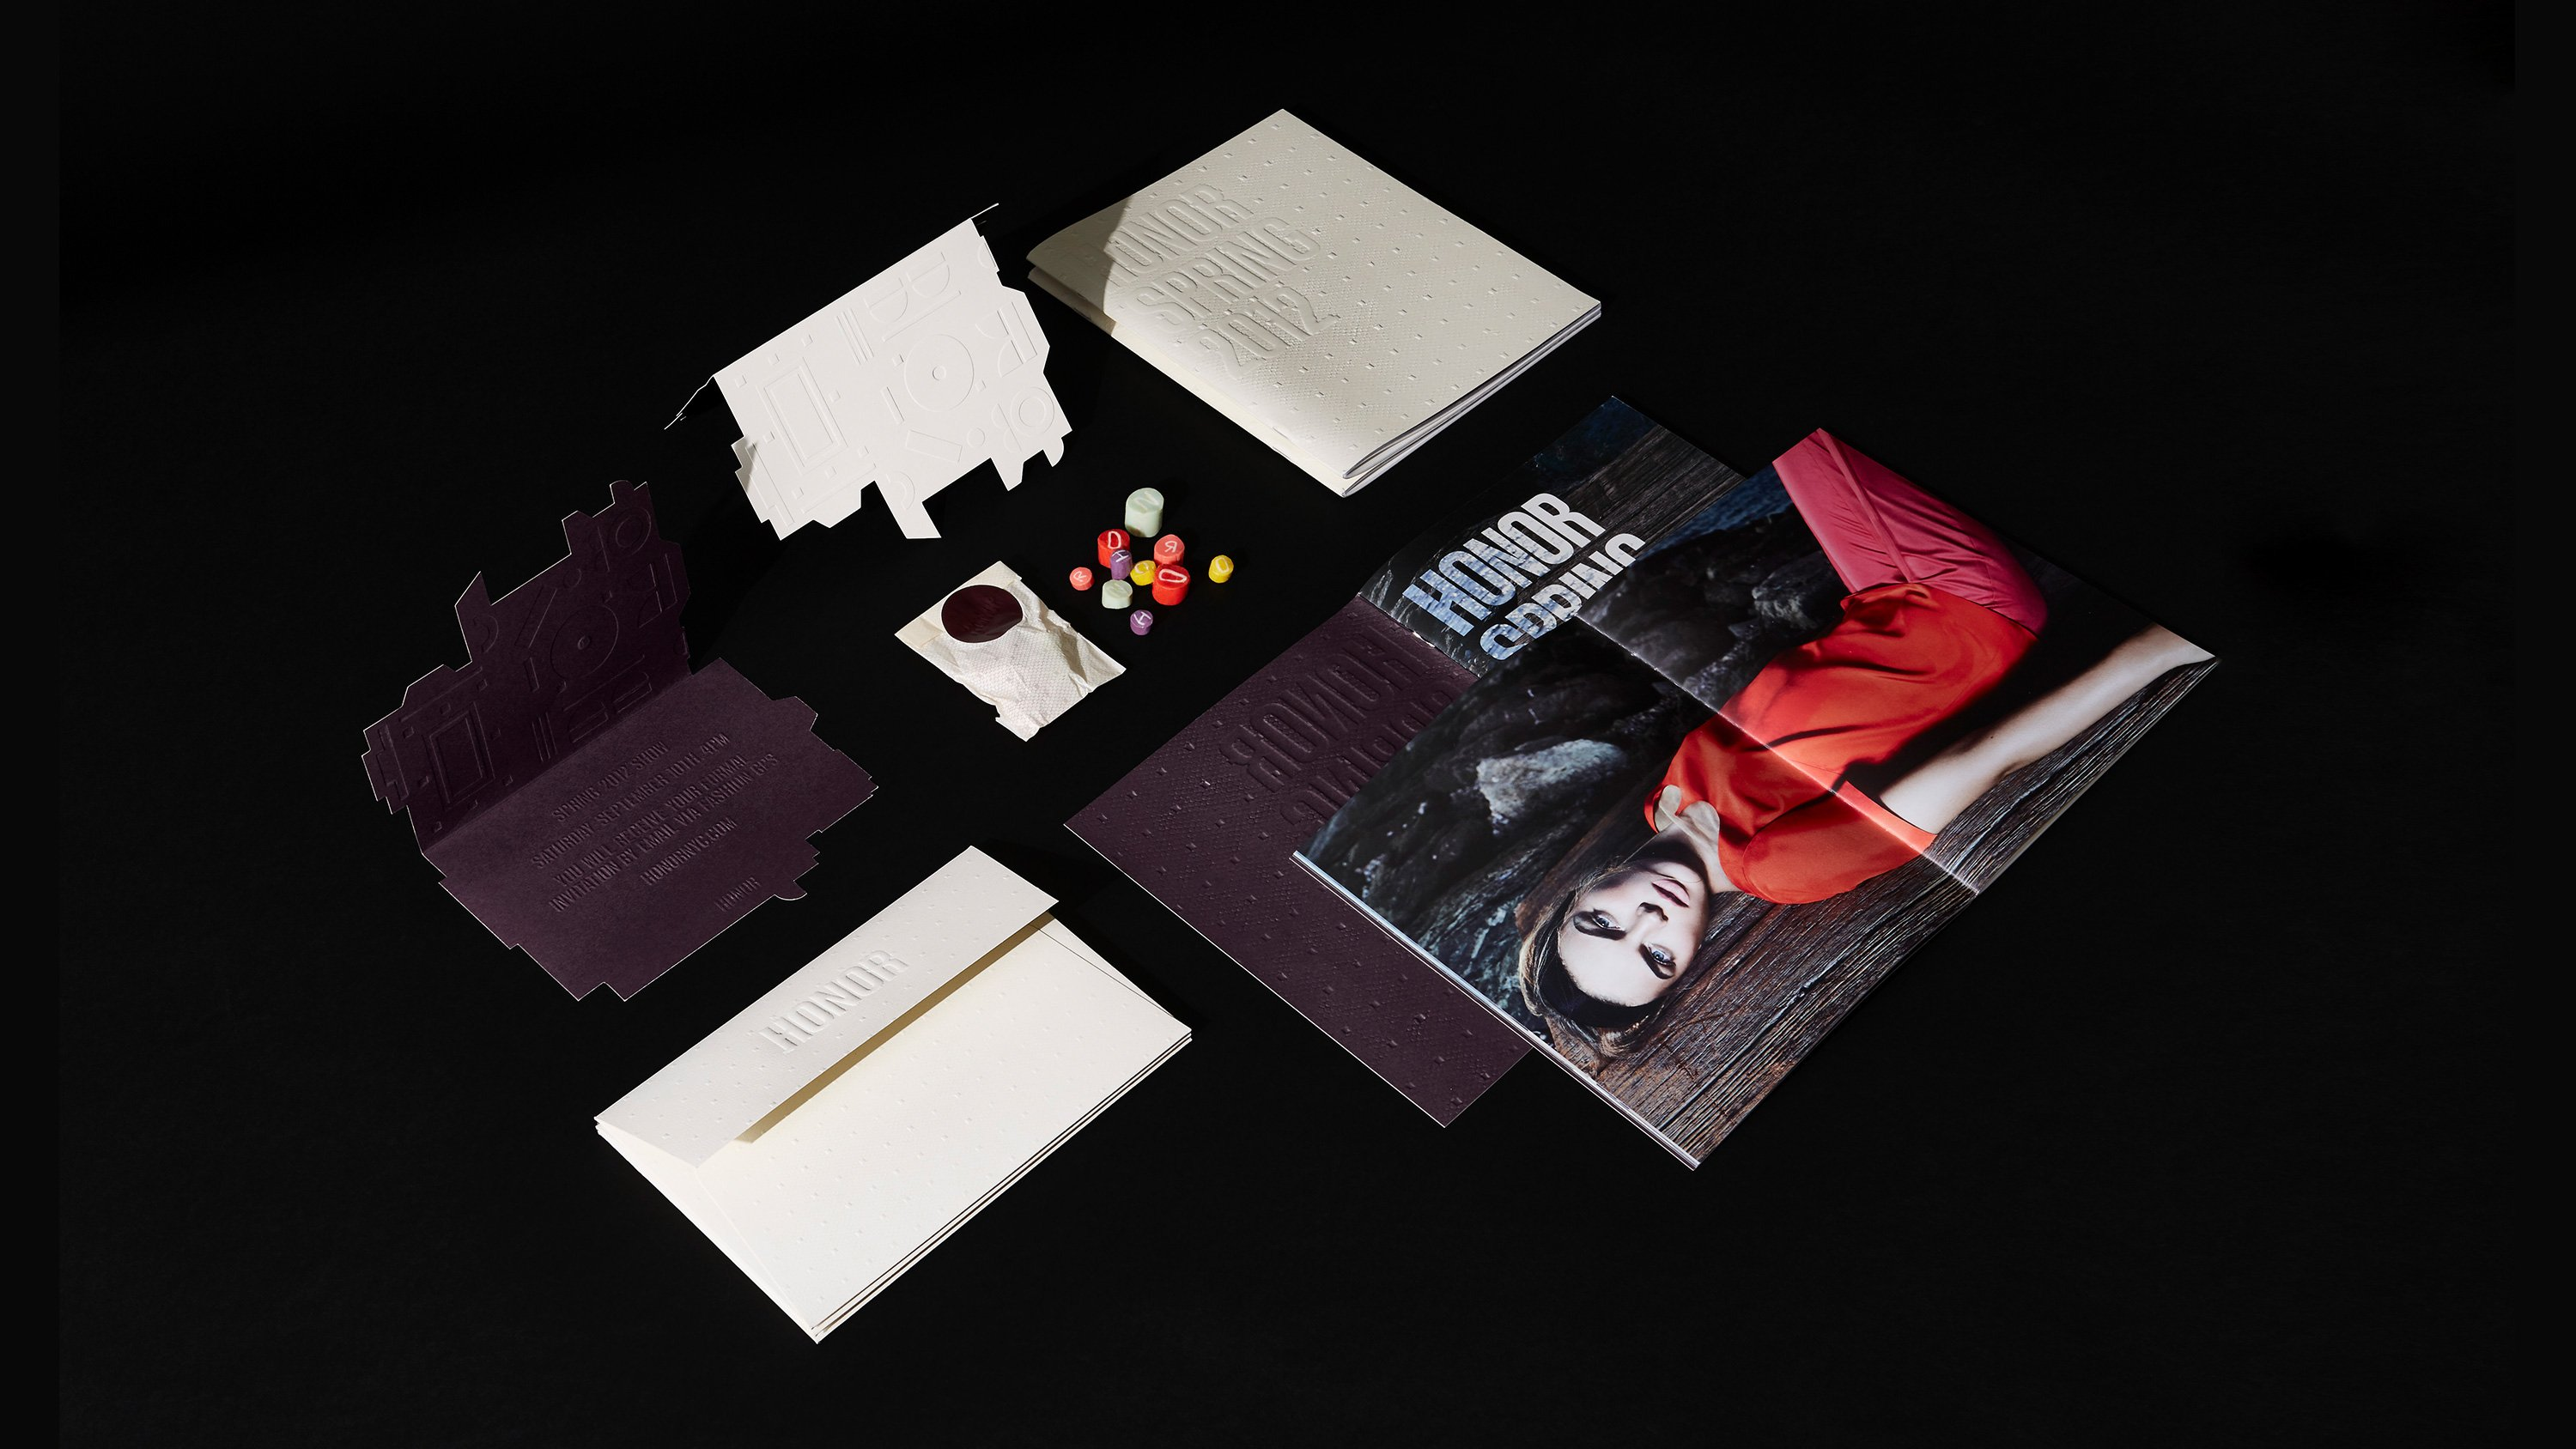 Various printed Honor stationary and posters, designed by RoAndCo